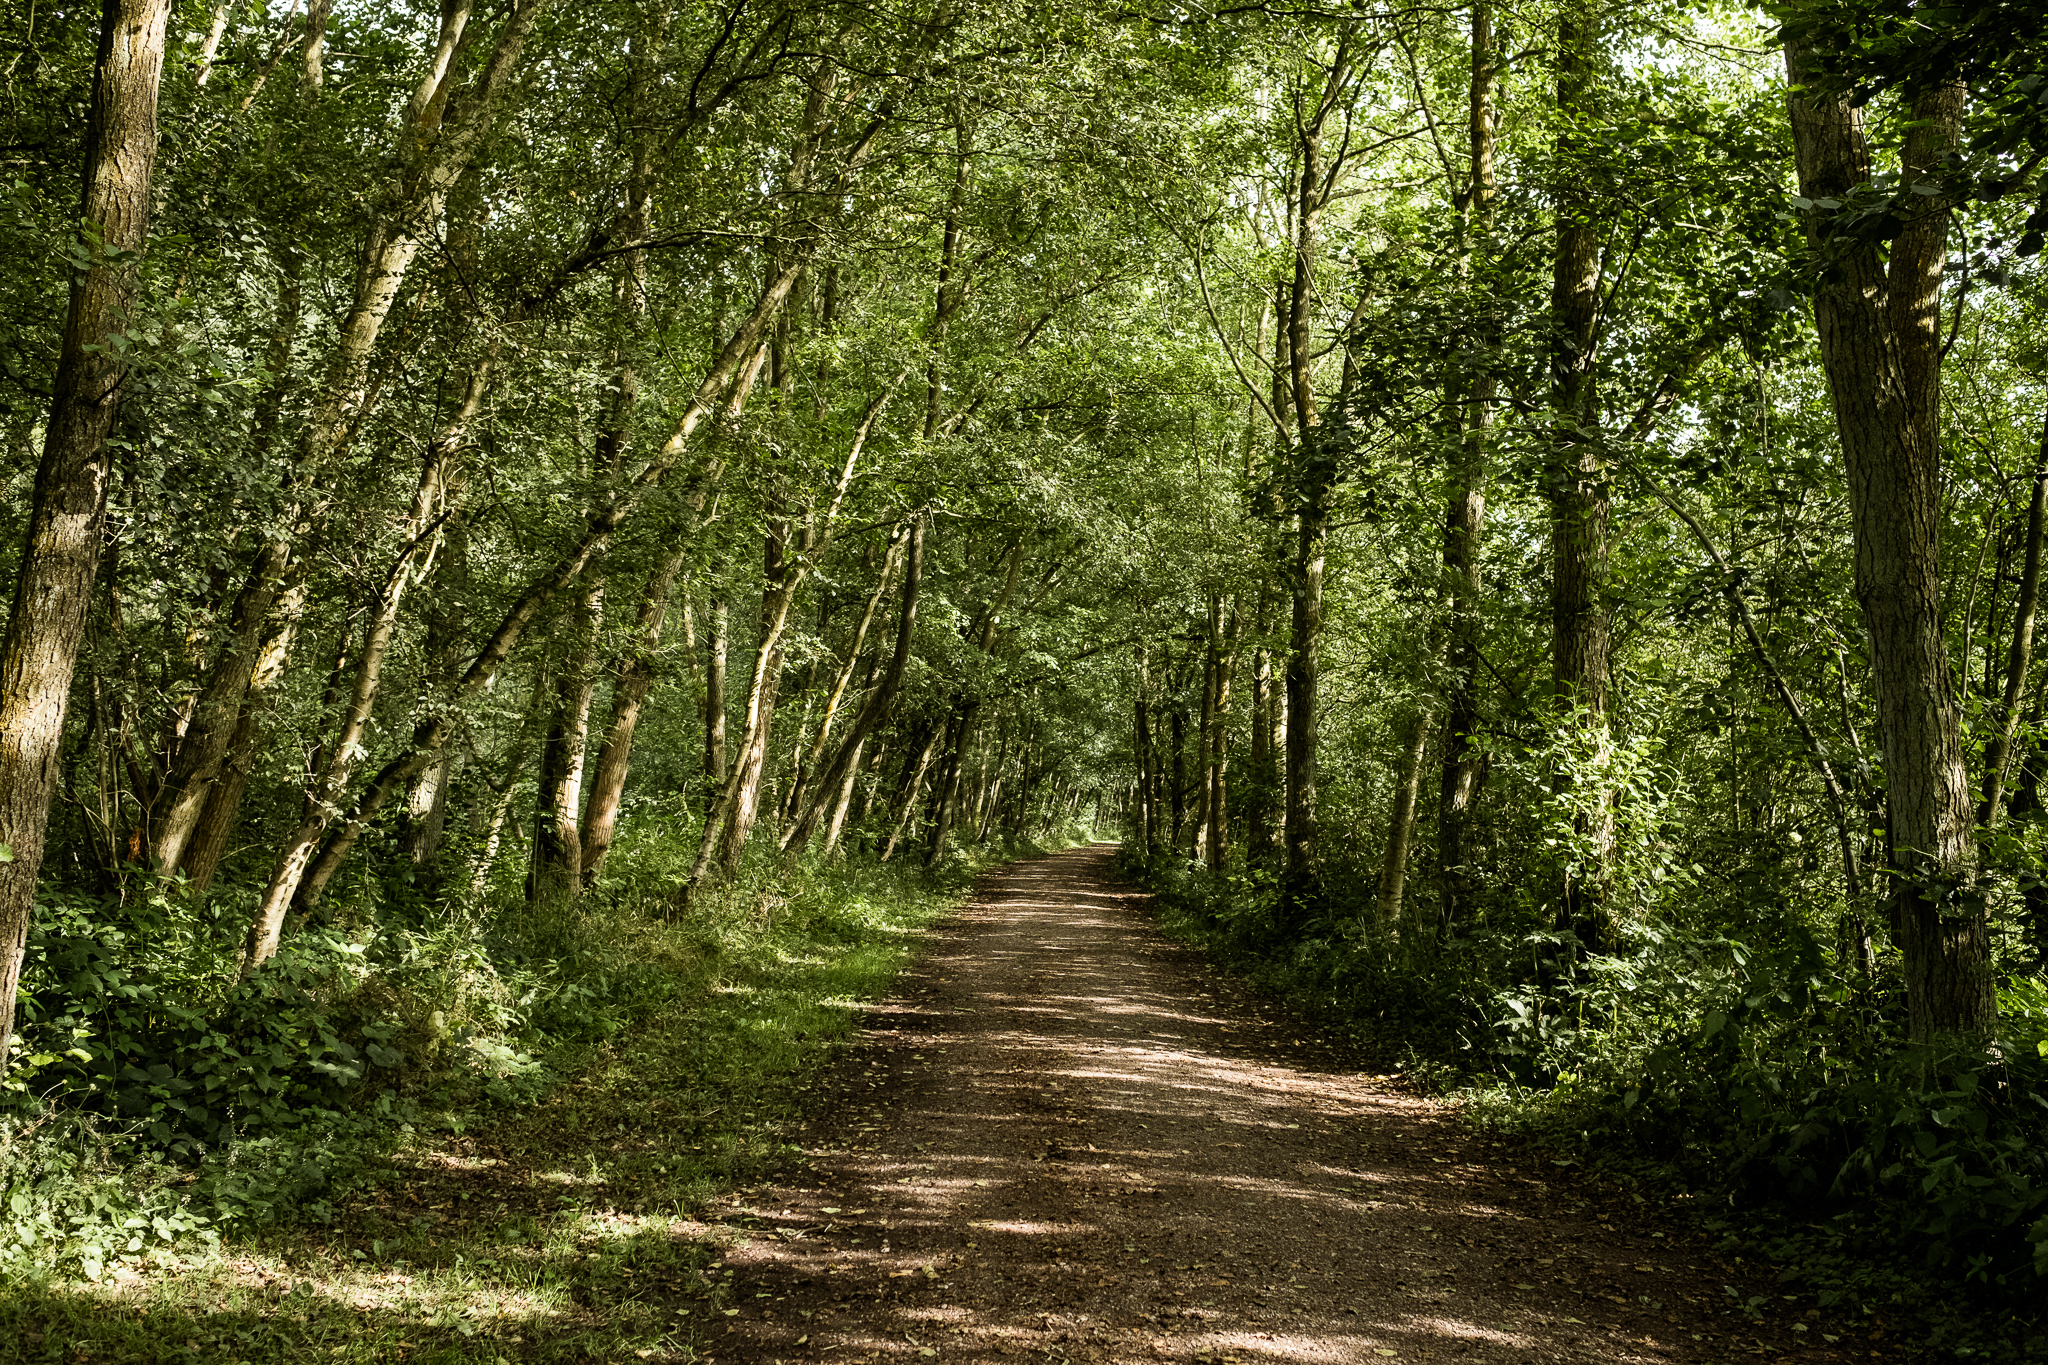 07.31.2016 Dimmingsdale Walk Photowalk Staffordshire Ramblers Retreat Trees-55.jpg